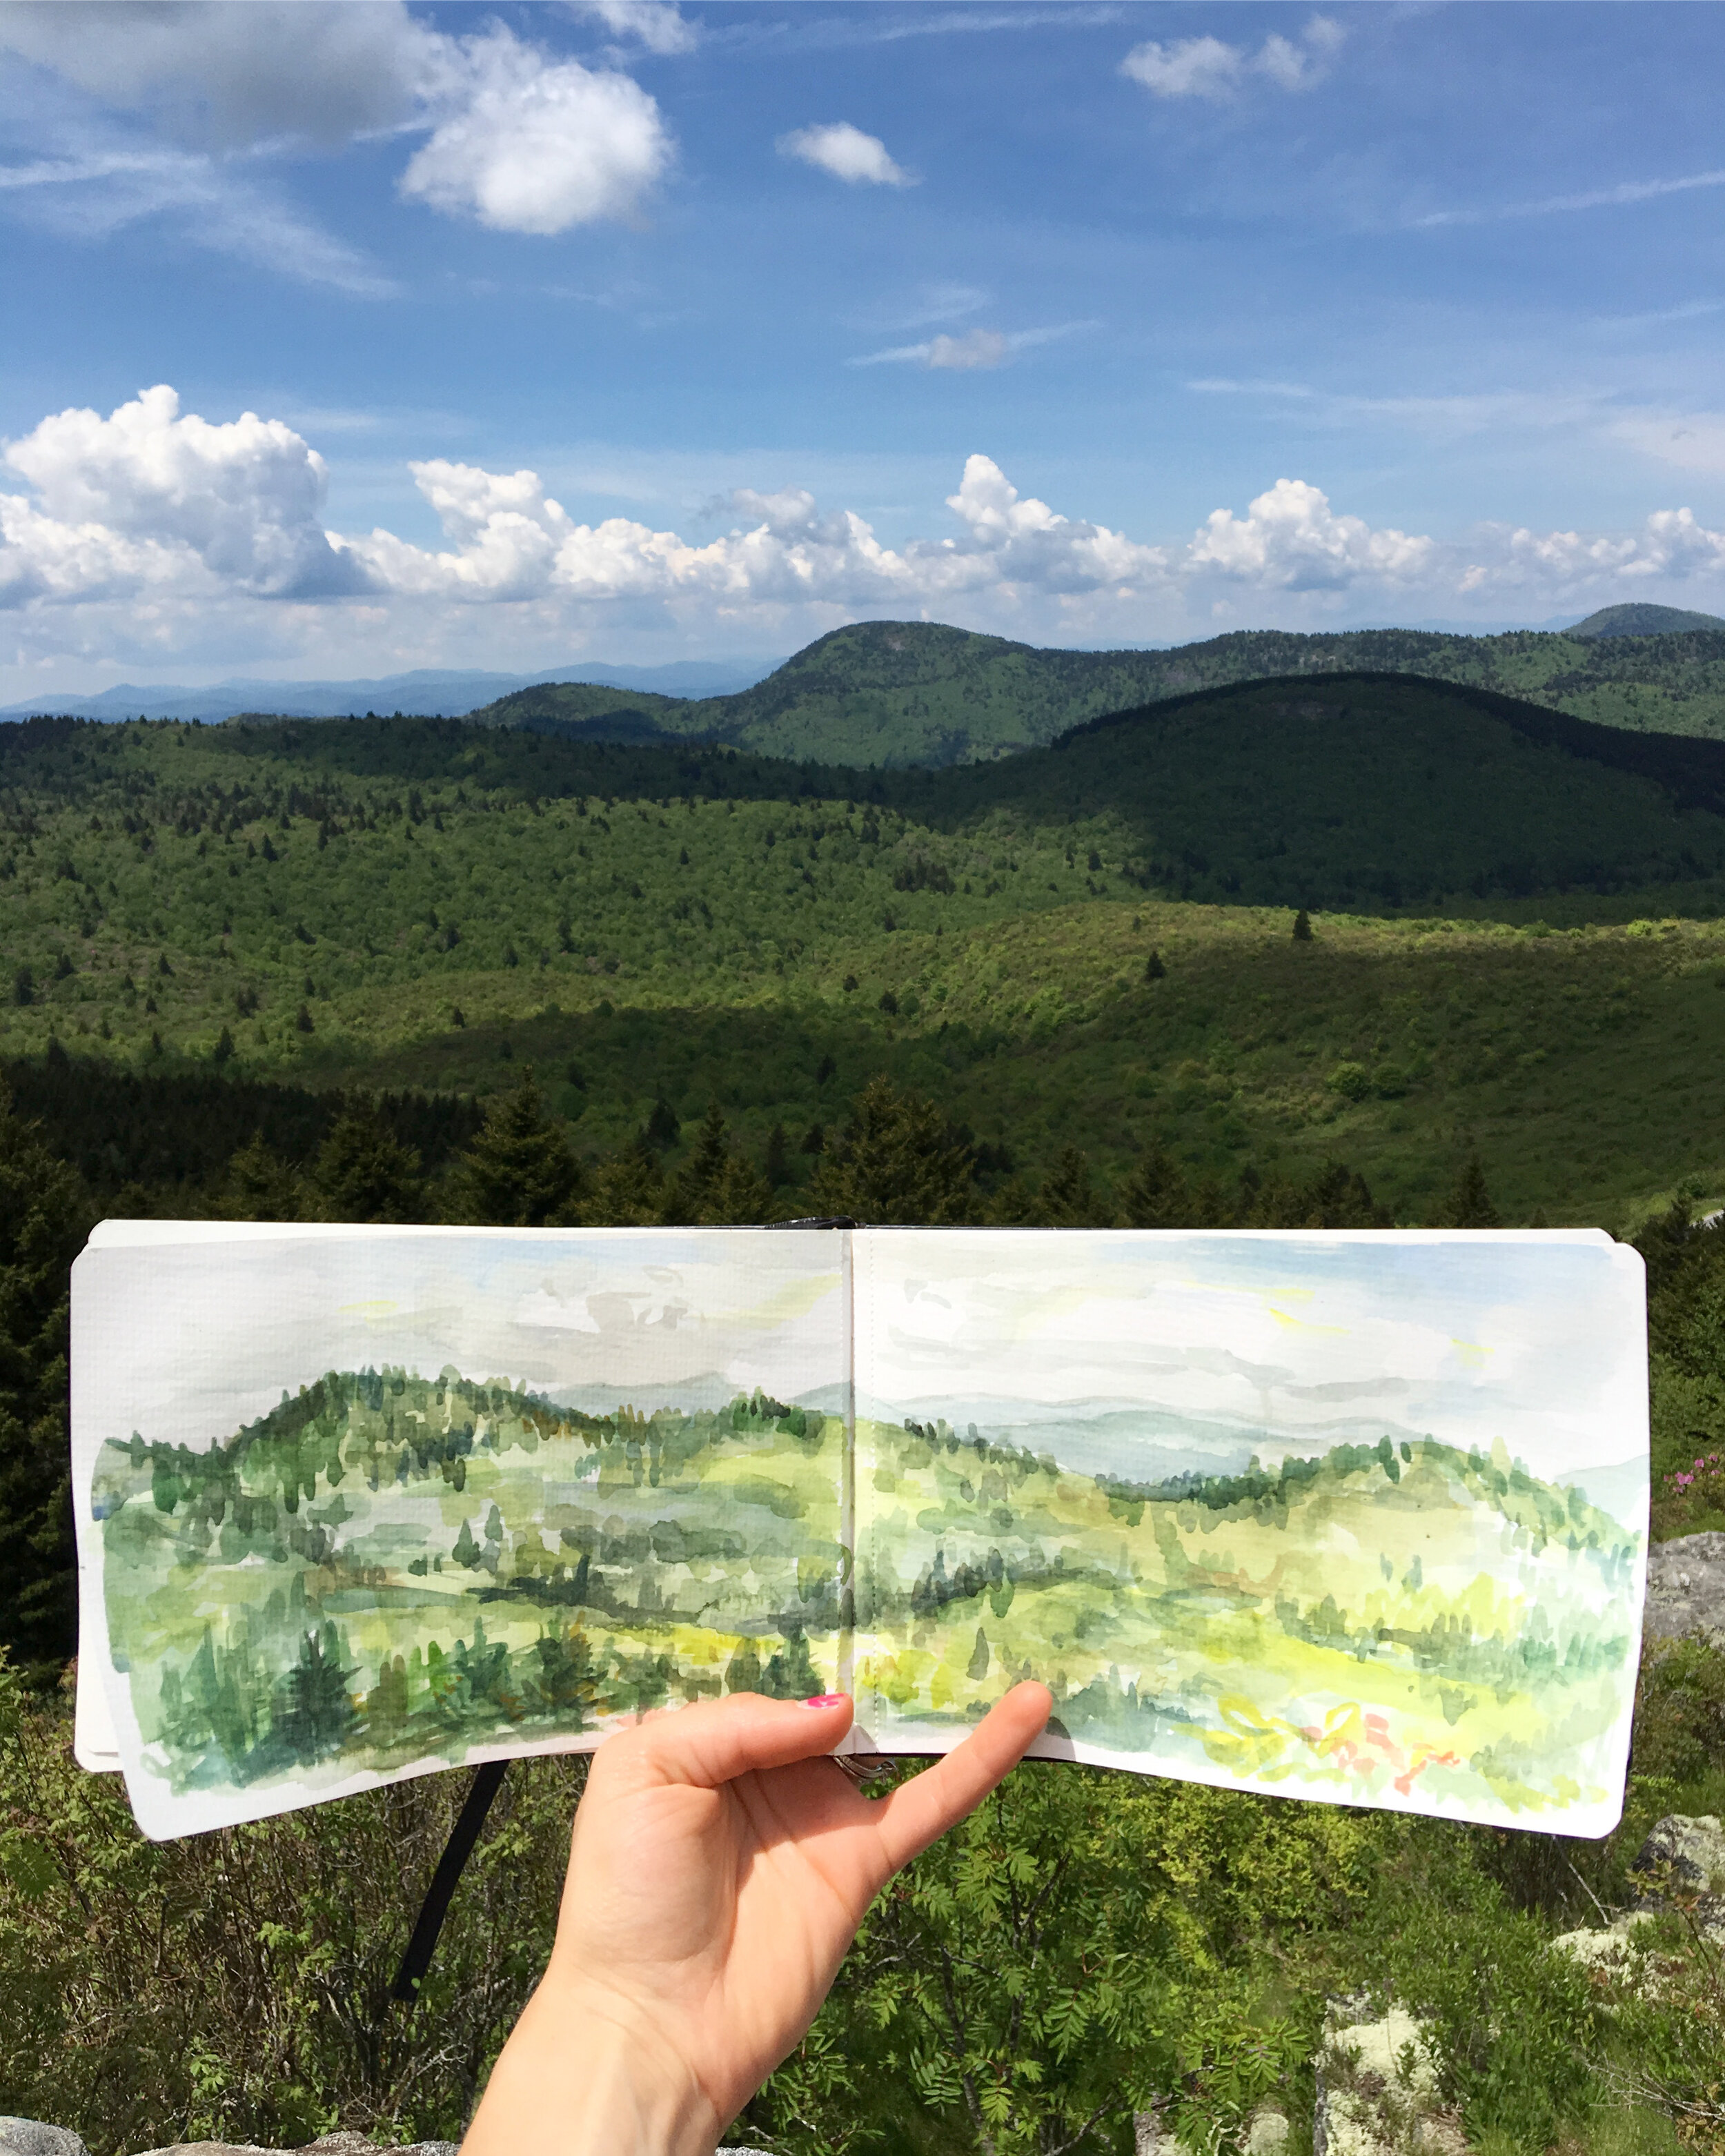 Remembering sunny days on mountaintops and making a goal for myself to use that sketchbook.